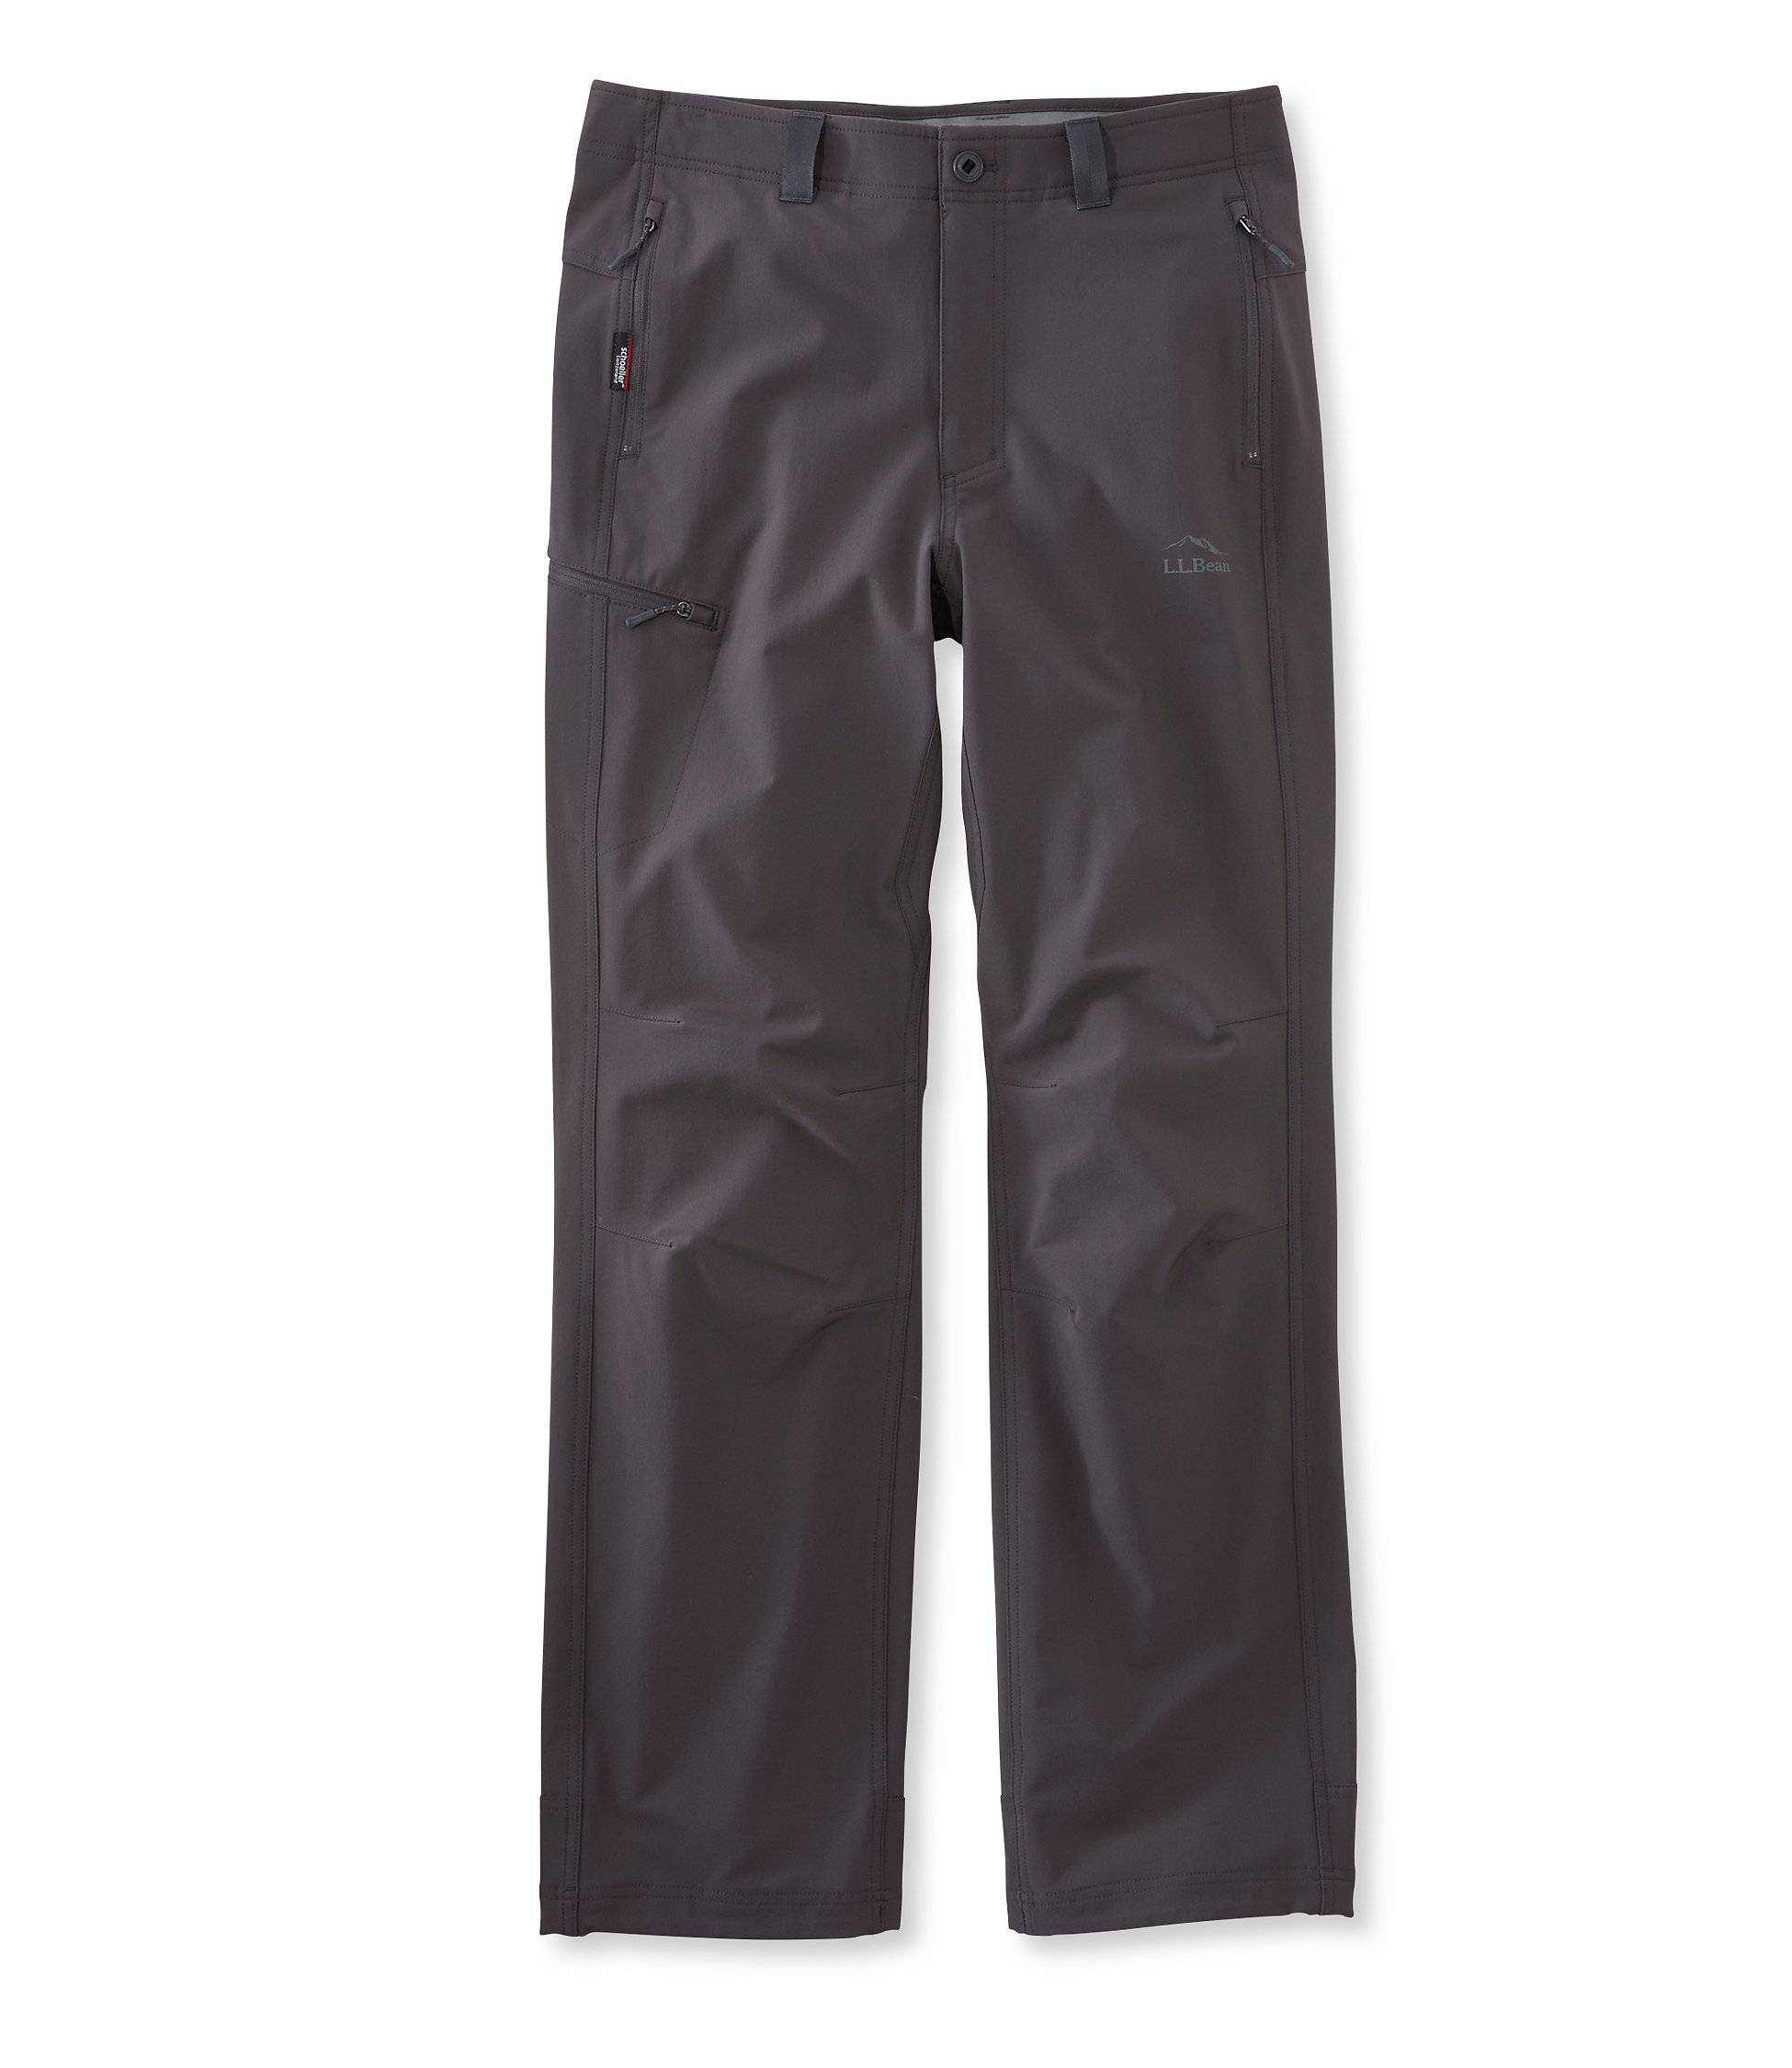 L.L.Bean Break Trail Pant